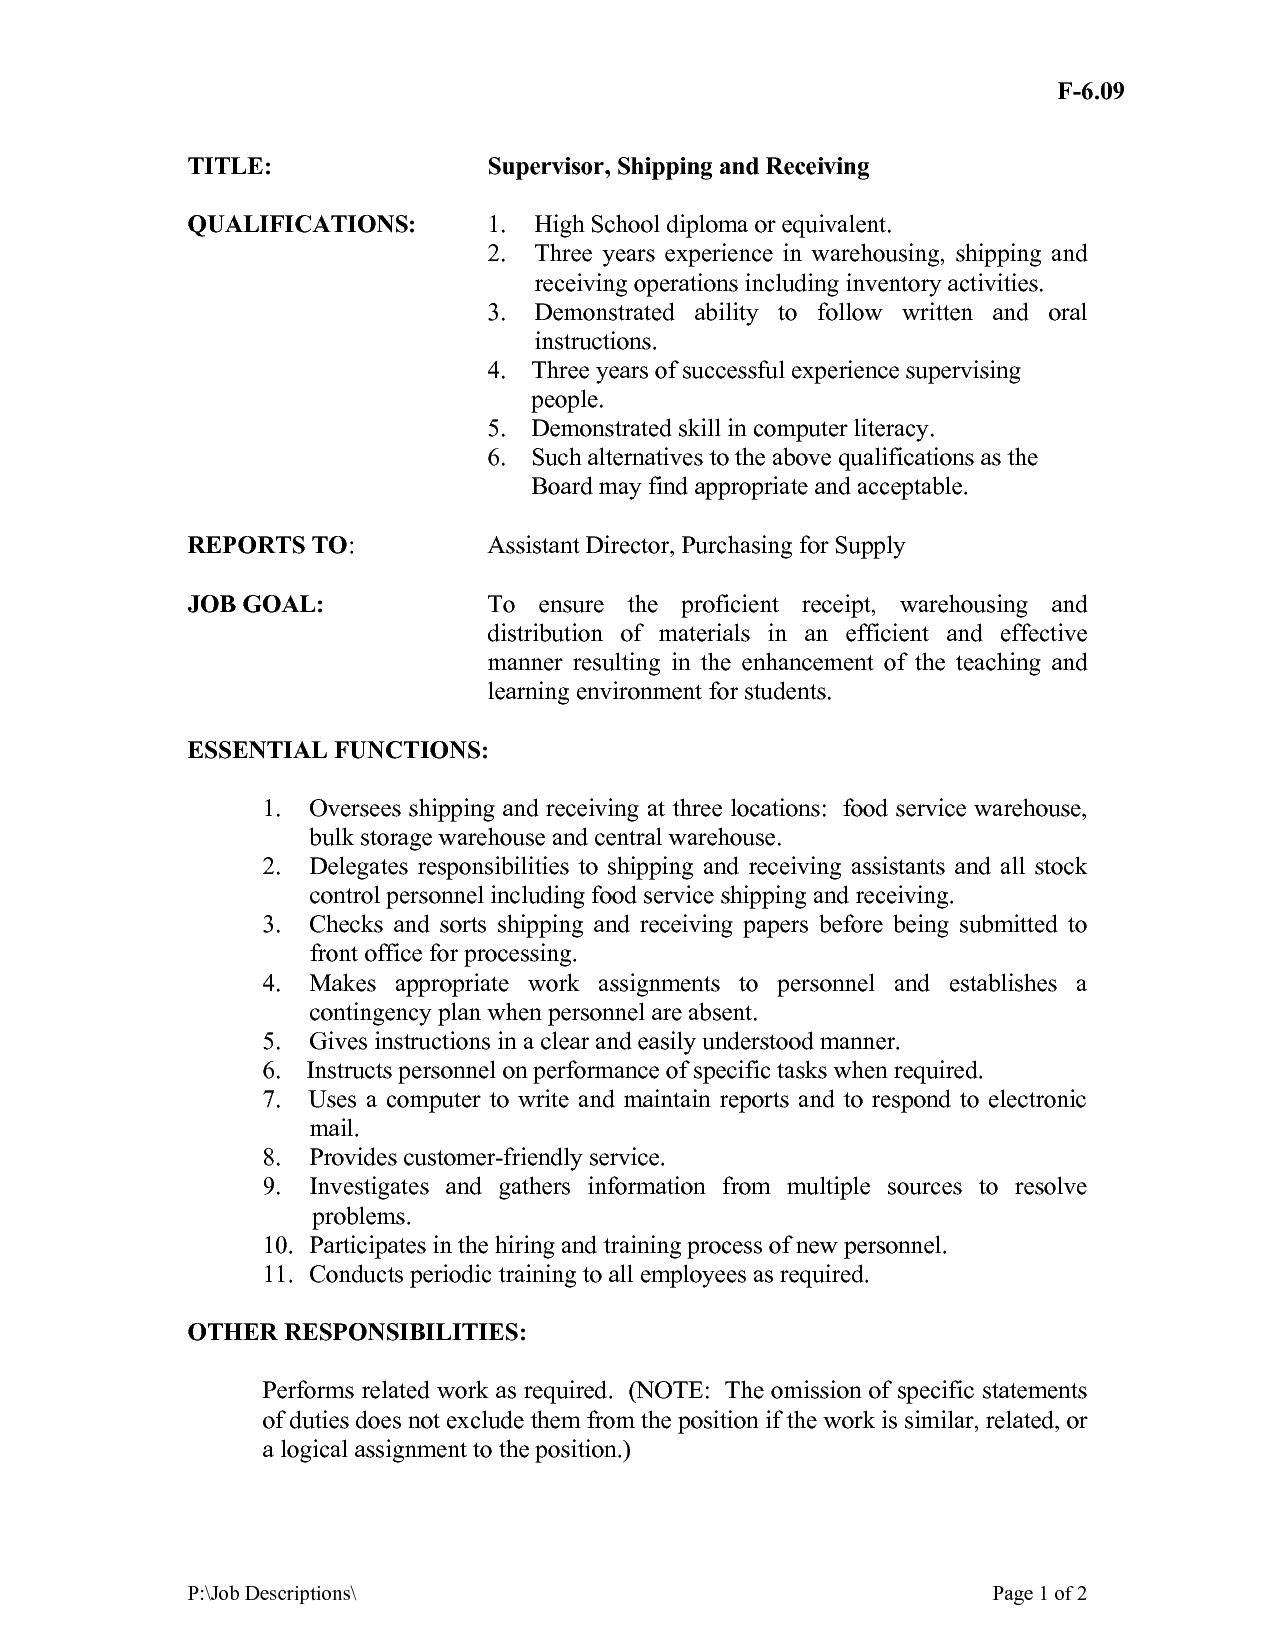 Shipping And Receiving Resume 3 gregory l pittman shipping and receiving Warehouse Receiving Clerk Job Description Find Warehouse Jobs Warehouse Receiving Clerk Job Description Find Warehouse Jobs